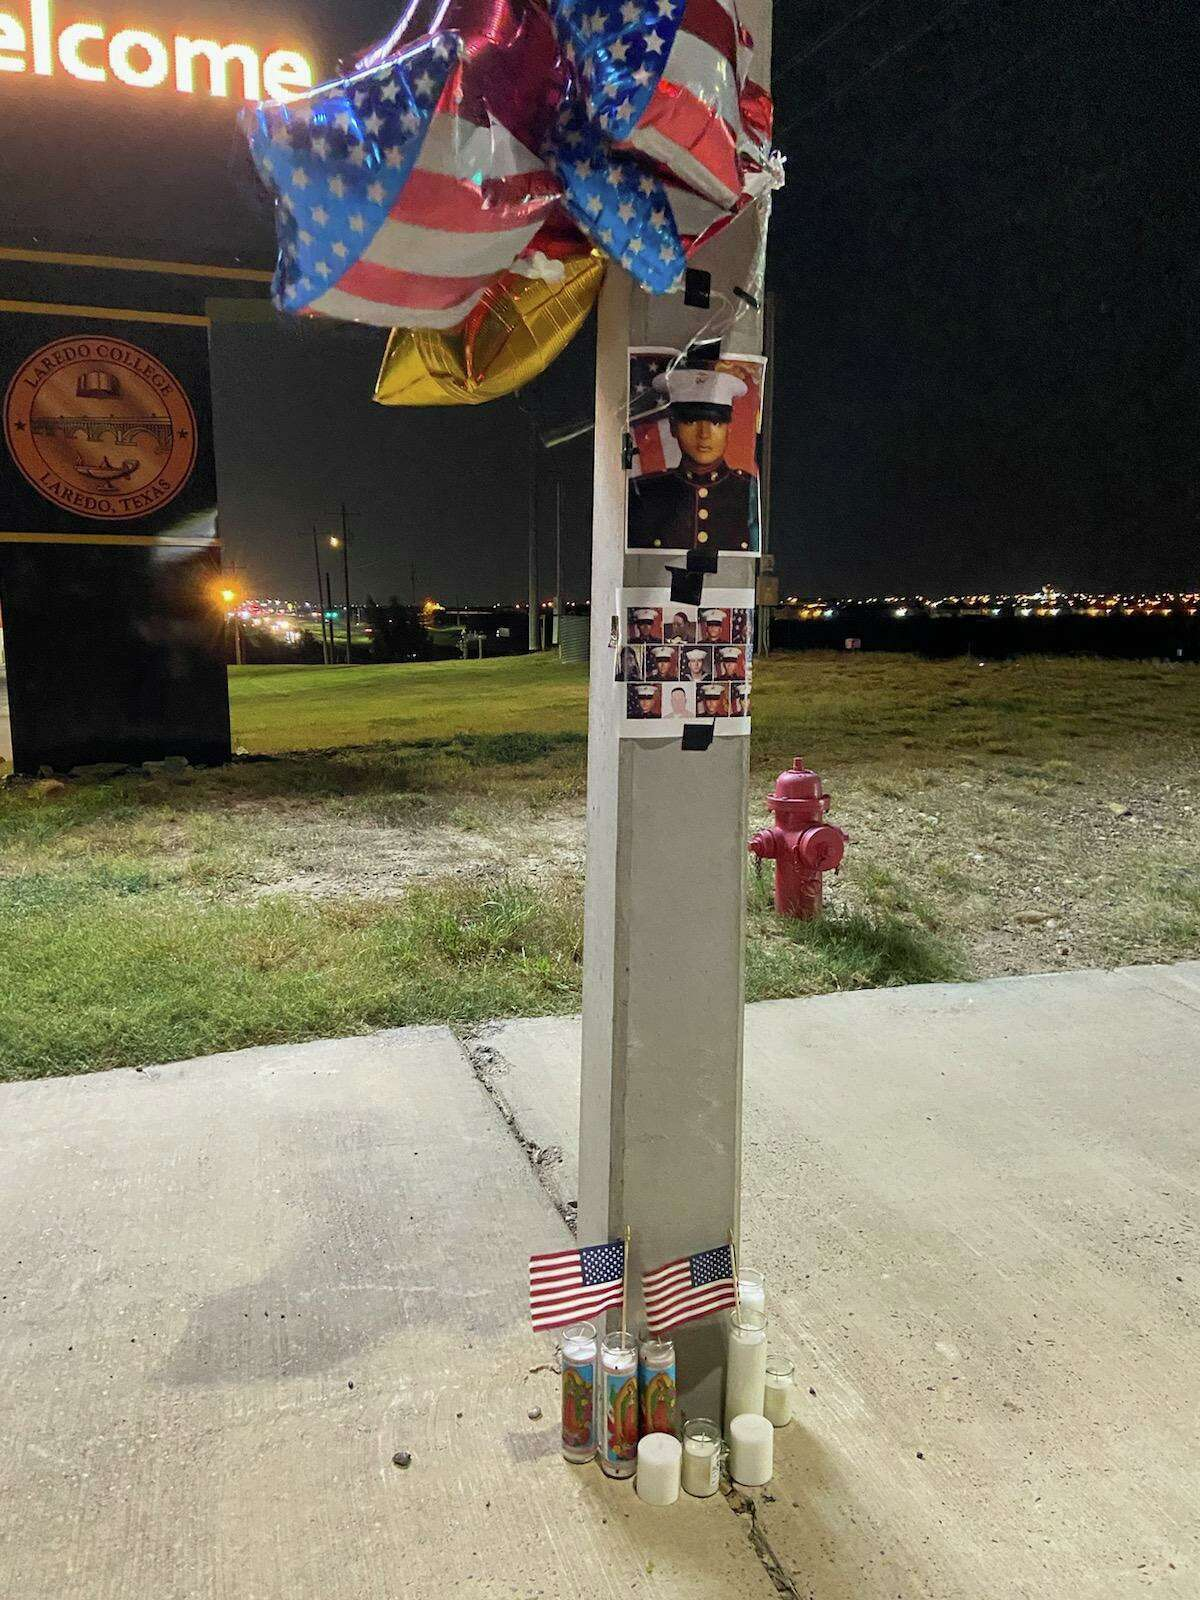 Locals gathered at Laredo College to remember Laredo's Lance Cpl. David Lee Espinoza after he was killed in the attack in Afghanistan last week.